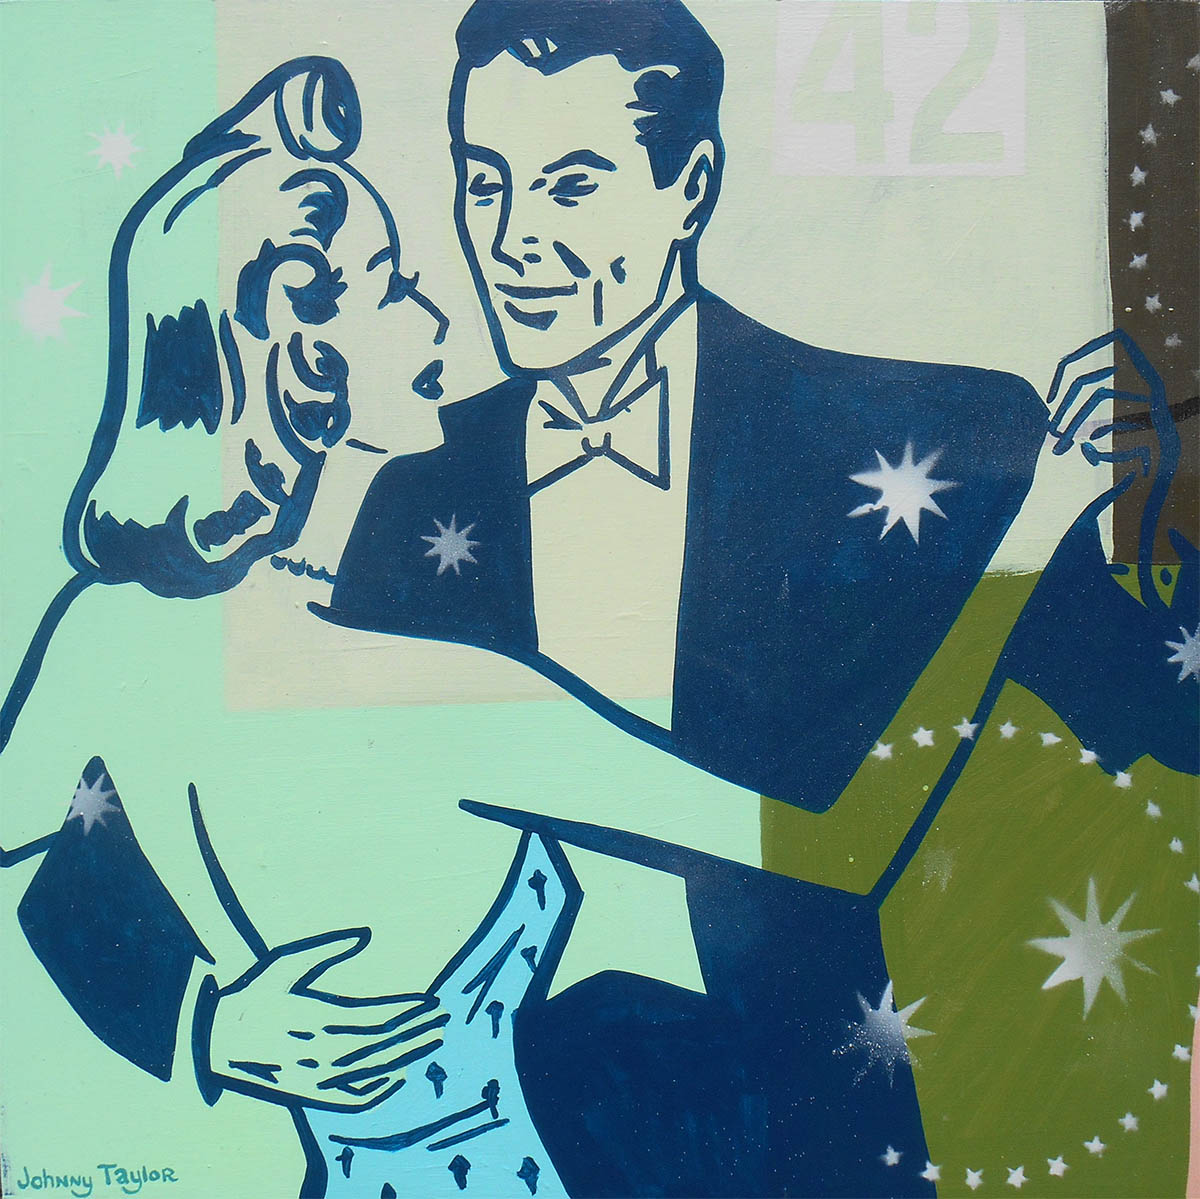 Dancing couple painting by Johnny Taylor